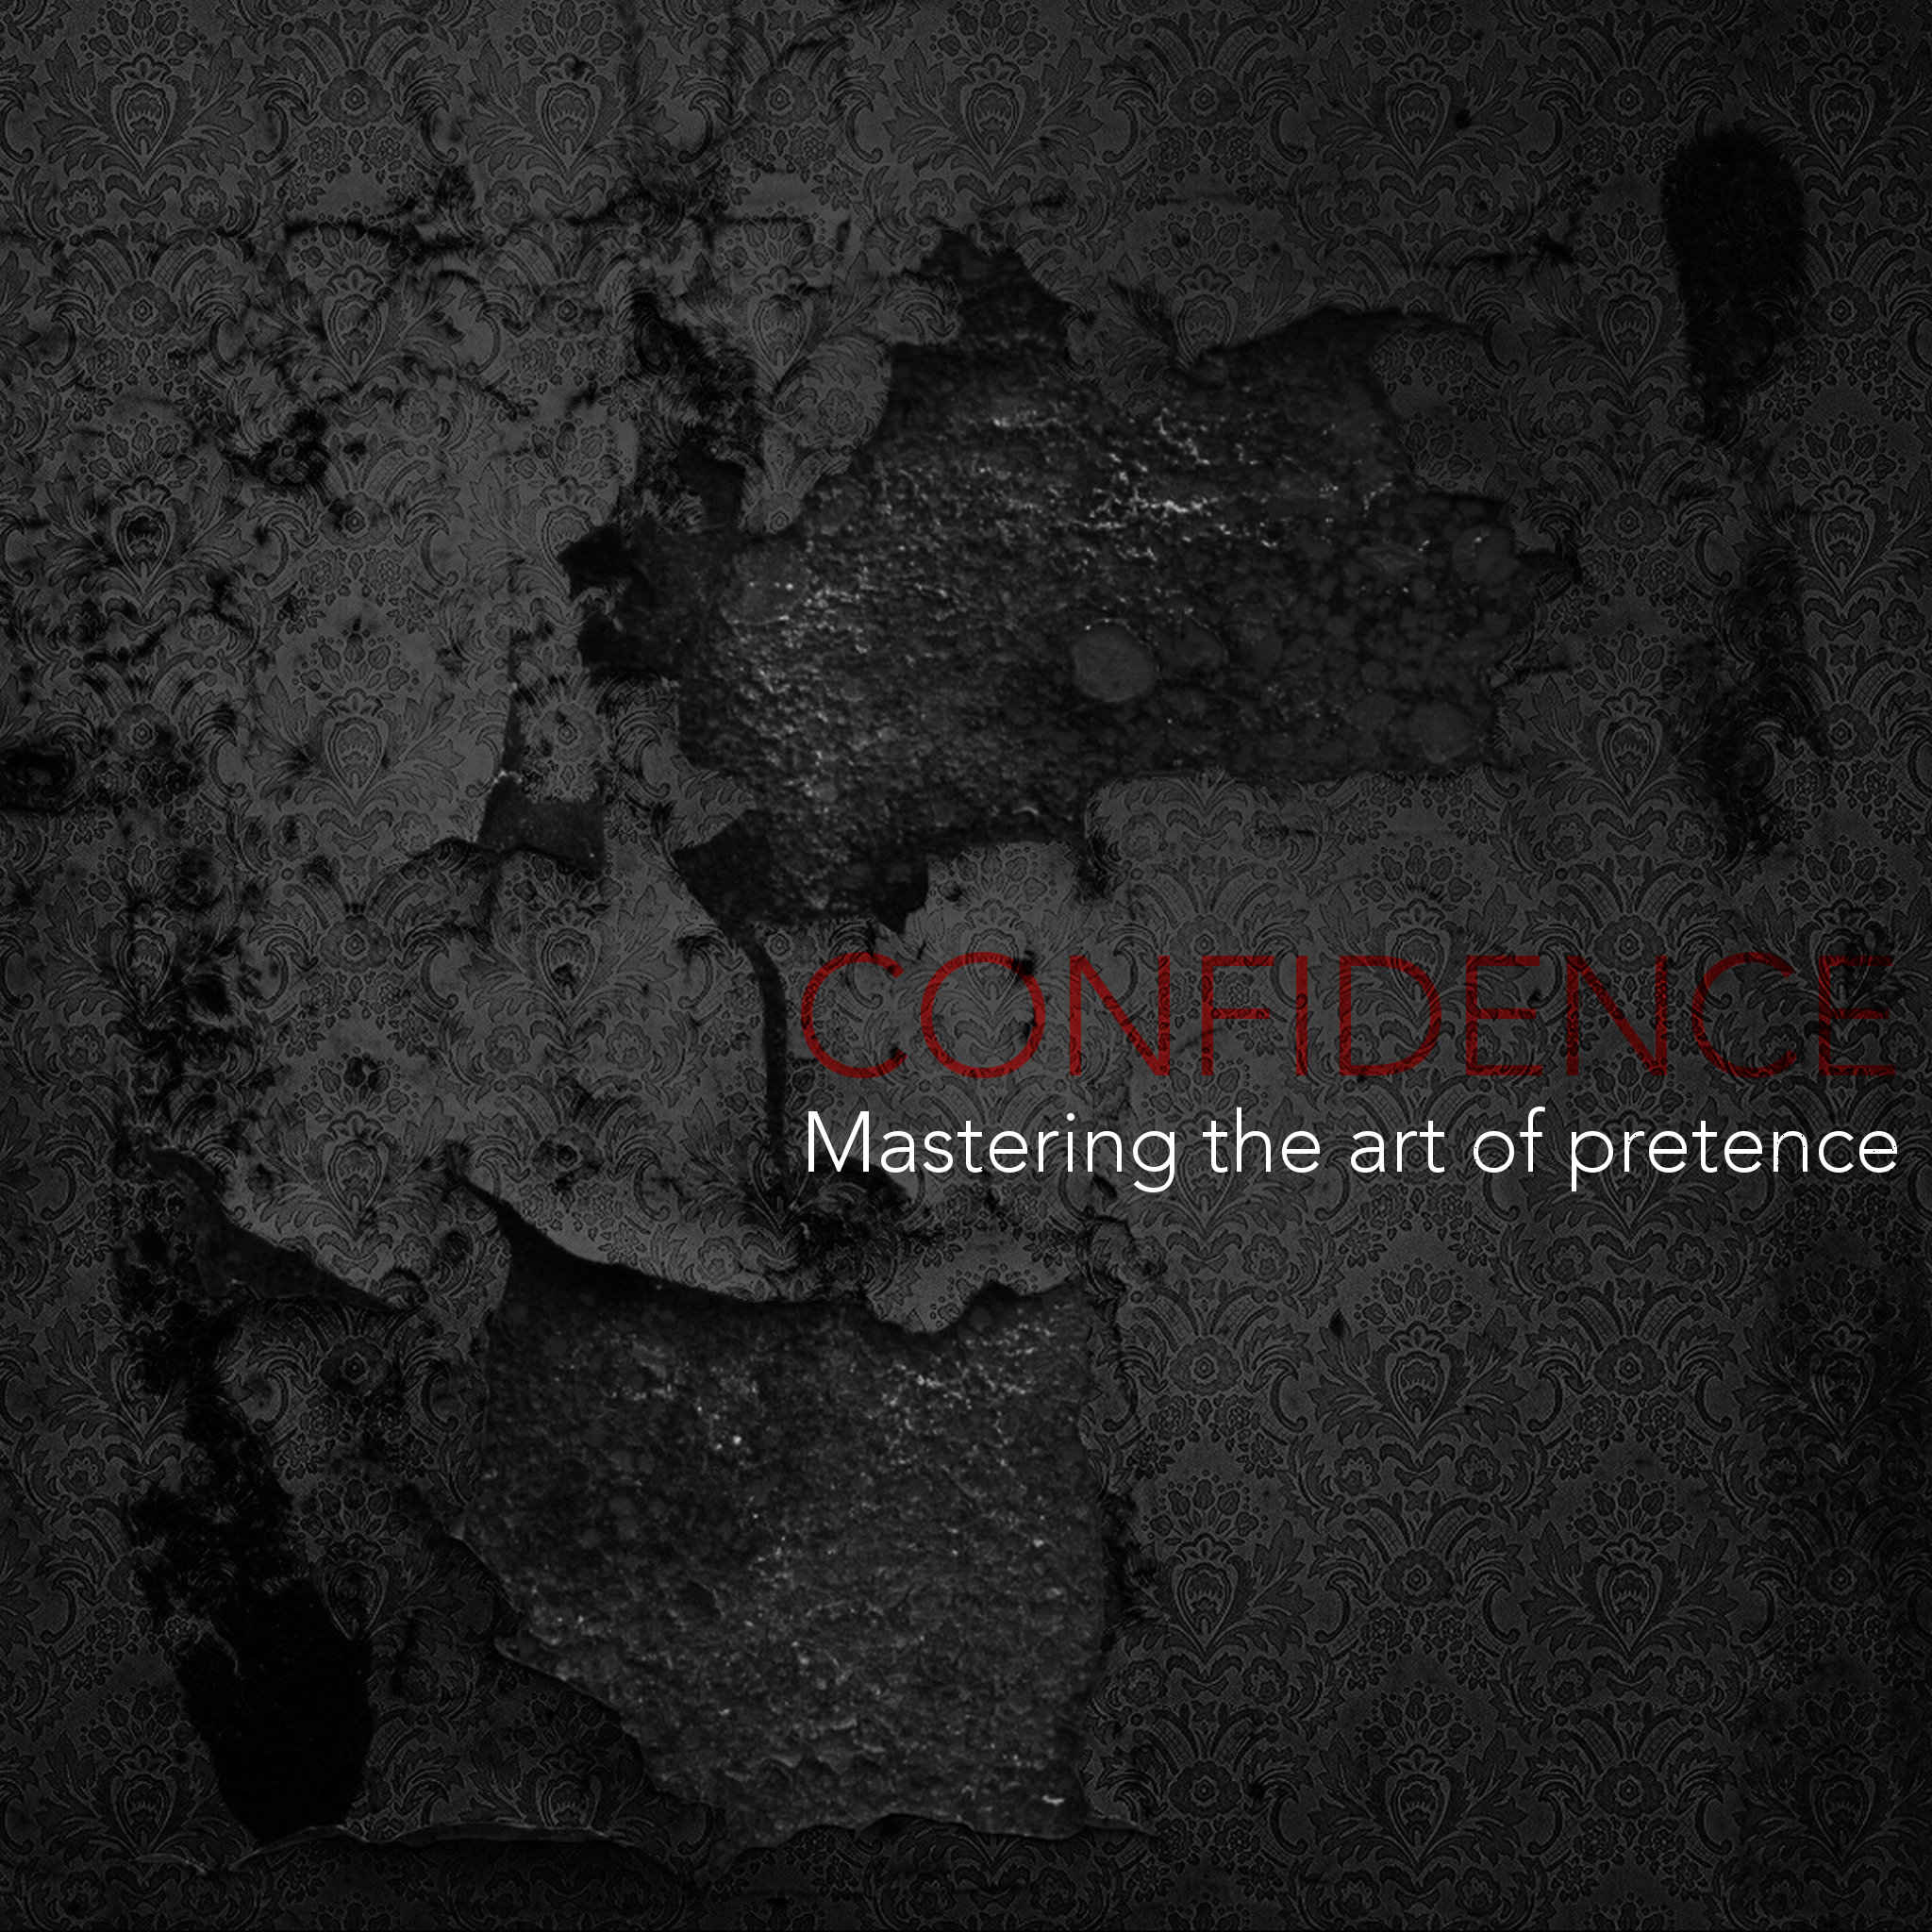 Notes on Confidence: A very large, powerful muddle!